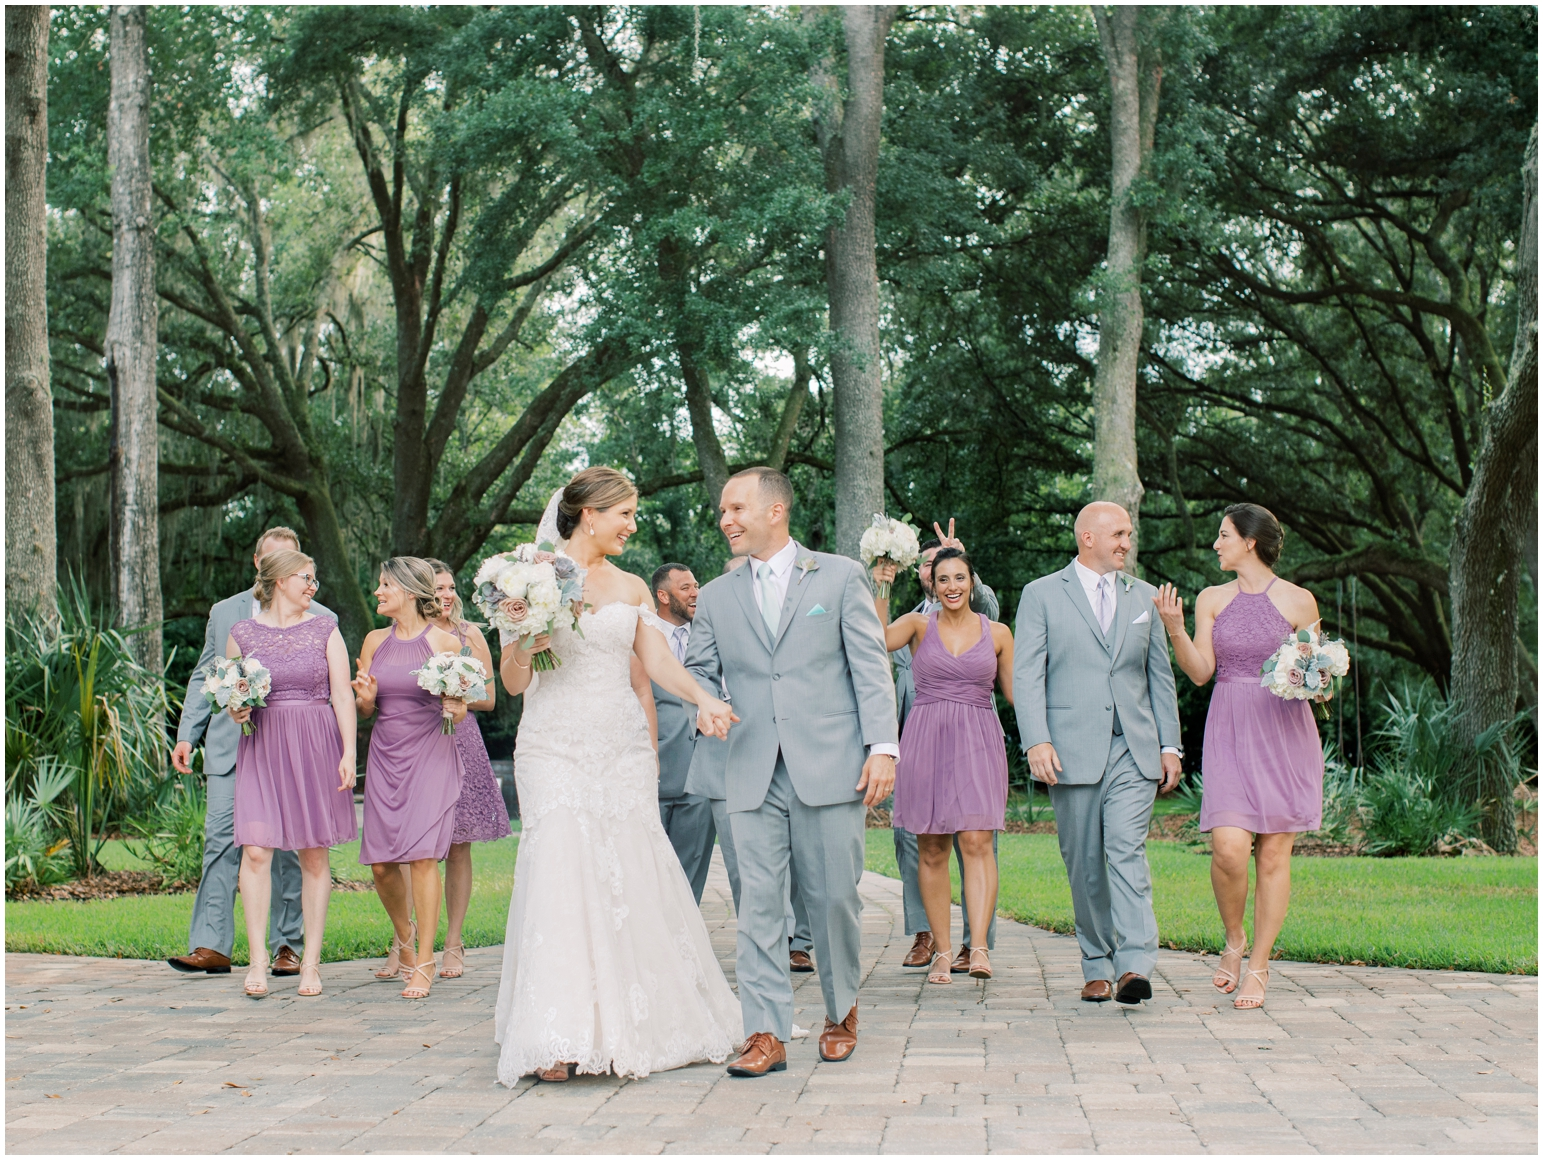 Lisa Silva Photography- Jacksonville, St Augustine, Fernandina Beach, Amelia Island, Ponte Vedra Beach, North East Florida Fine Art Film Photographer- Ashley and Shawn's wedding at bowing oaks plantation_0076.jpg